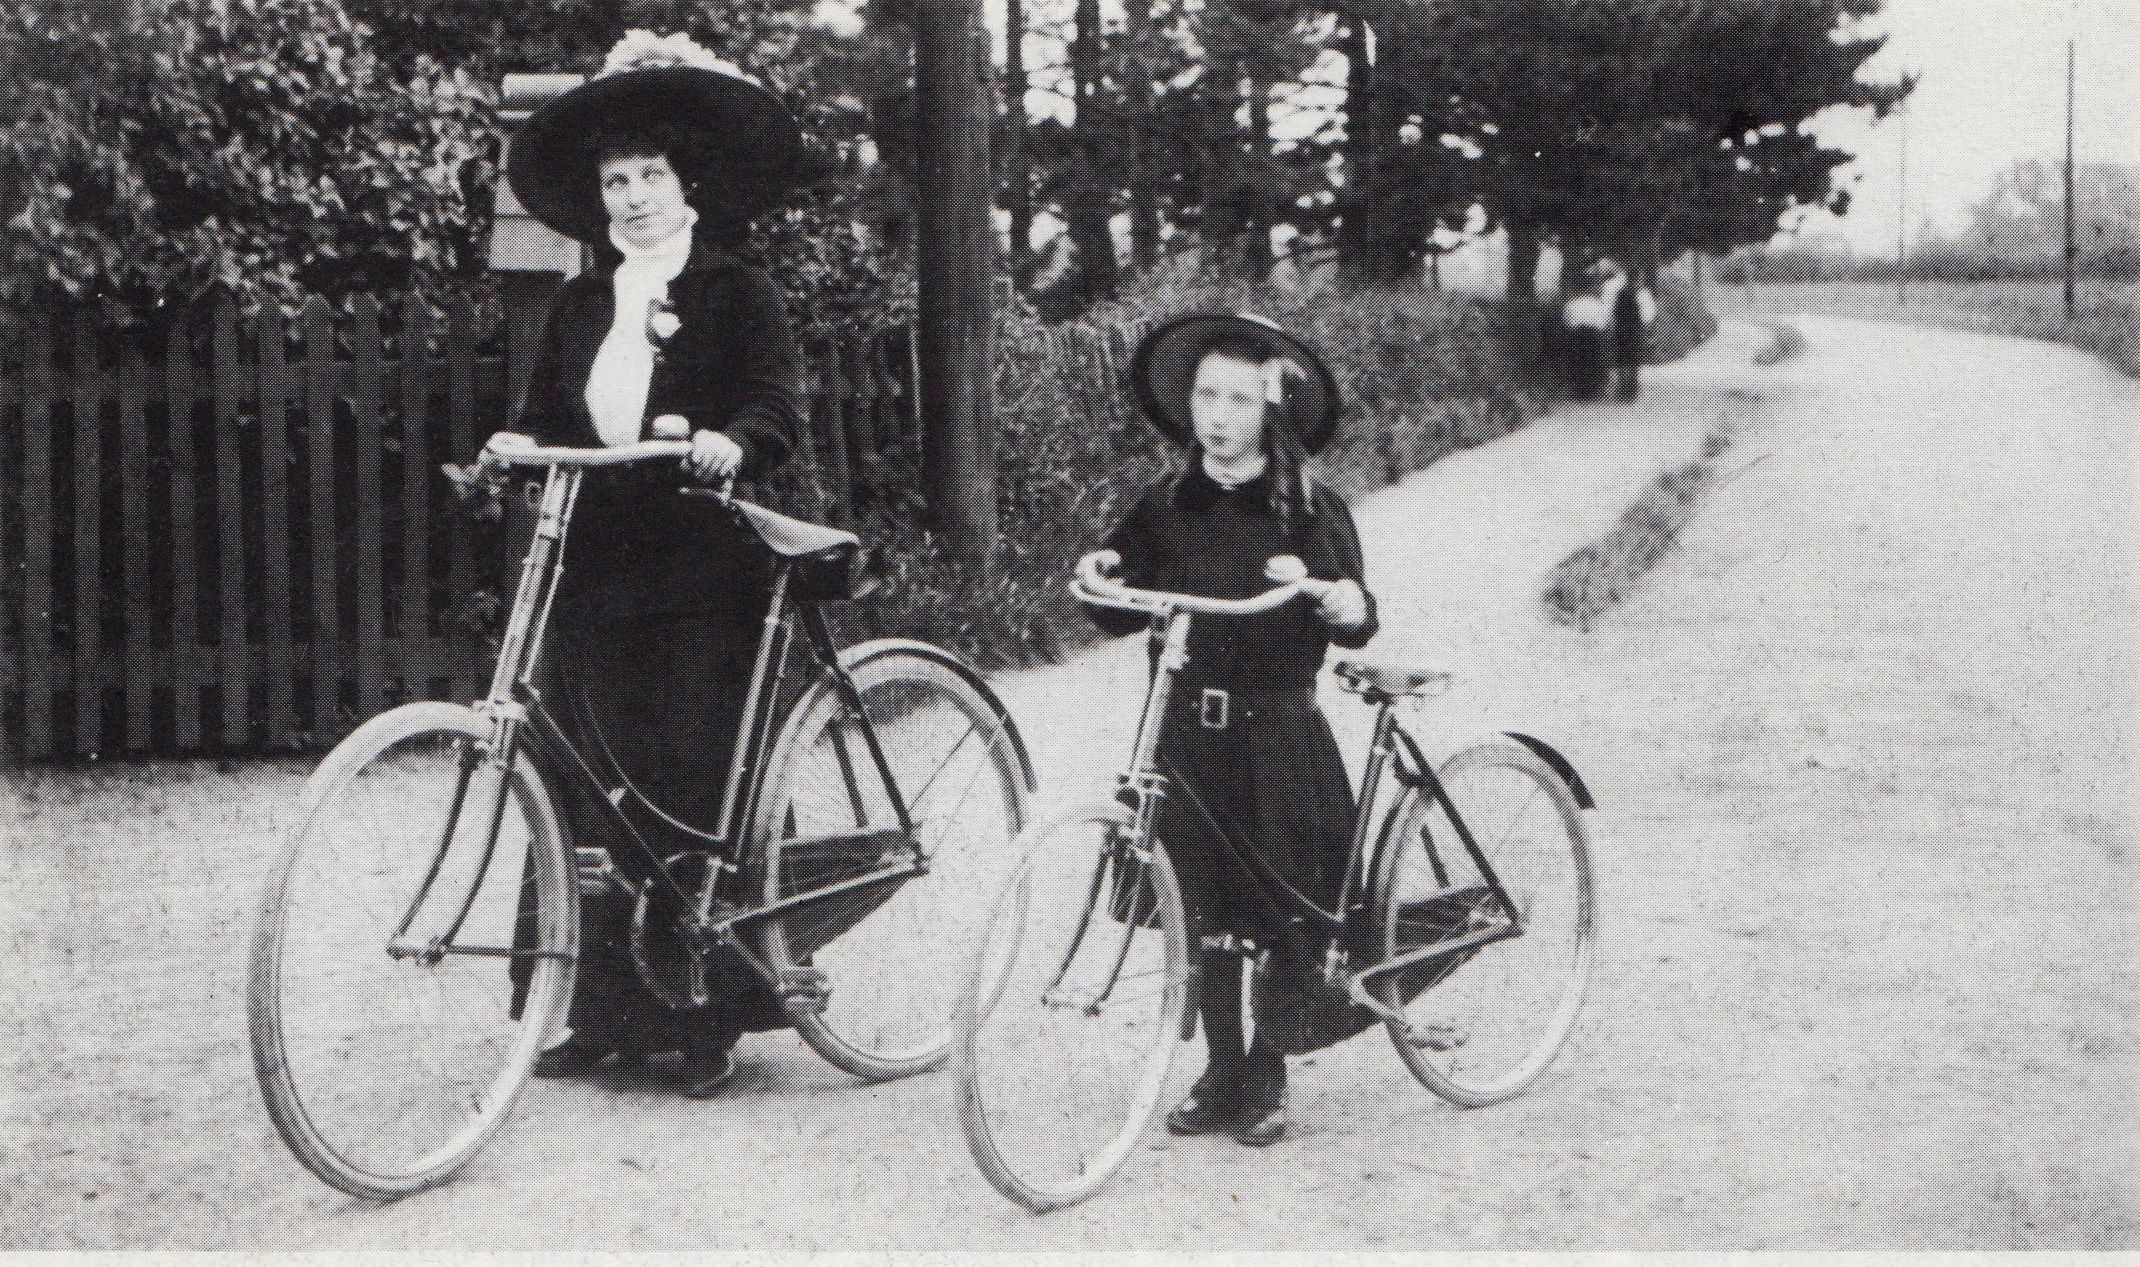 fpoh68_2ladycyclists_1911_0001.jpg